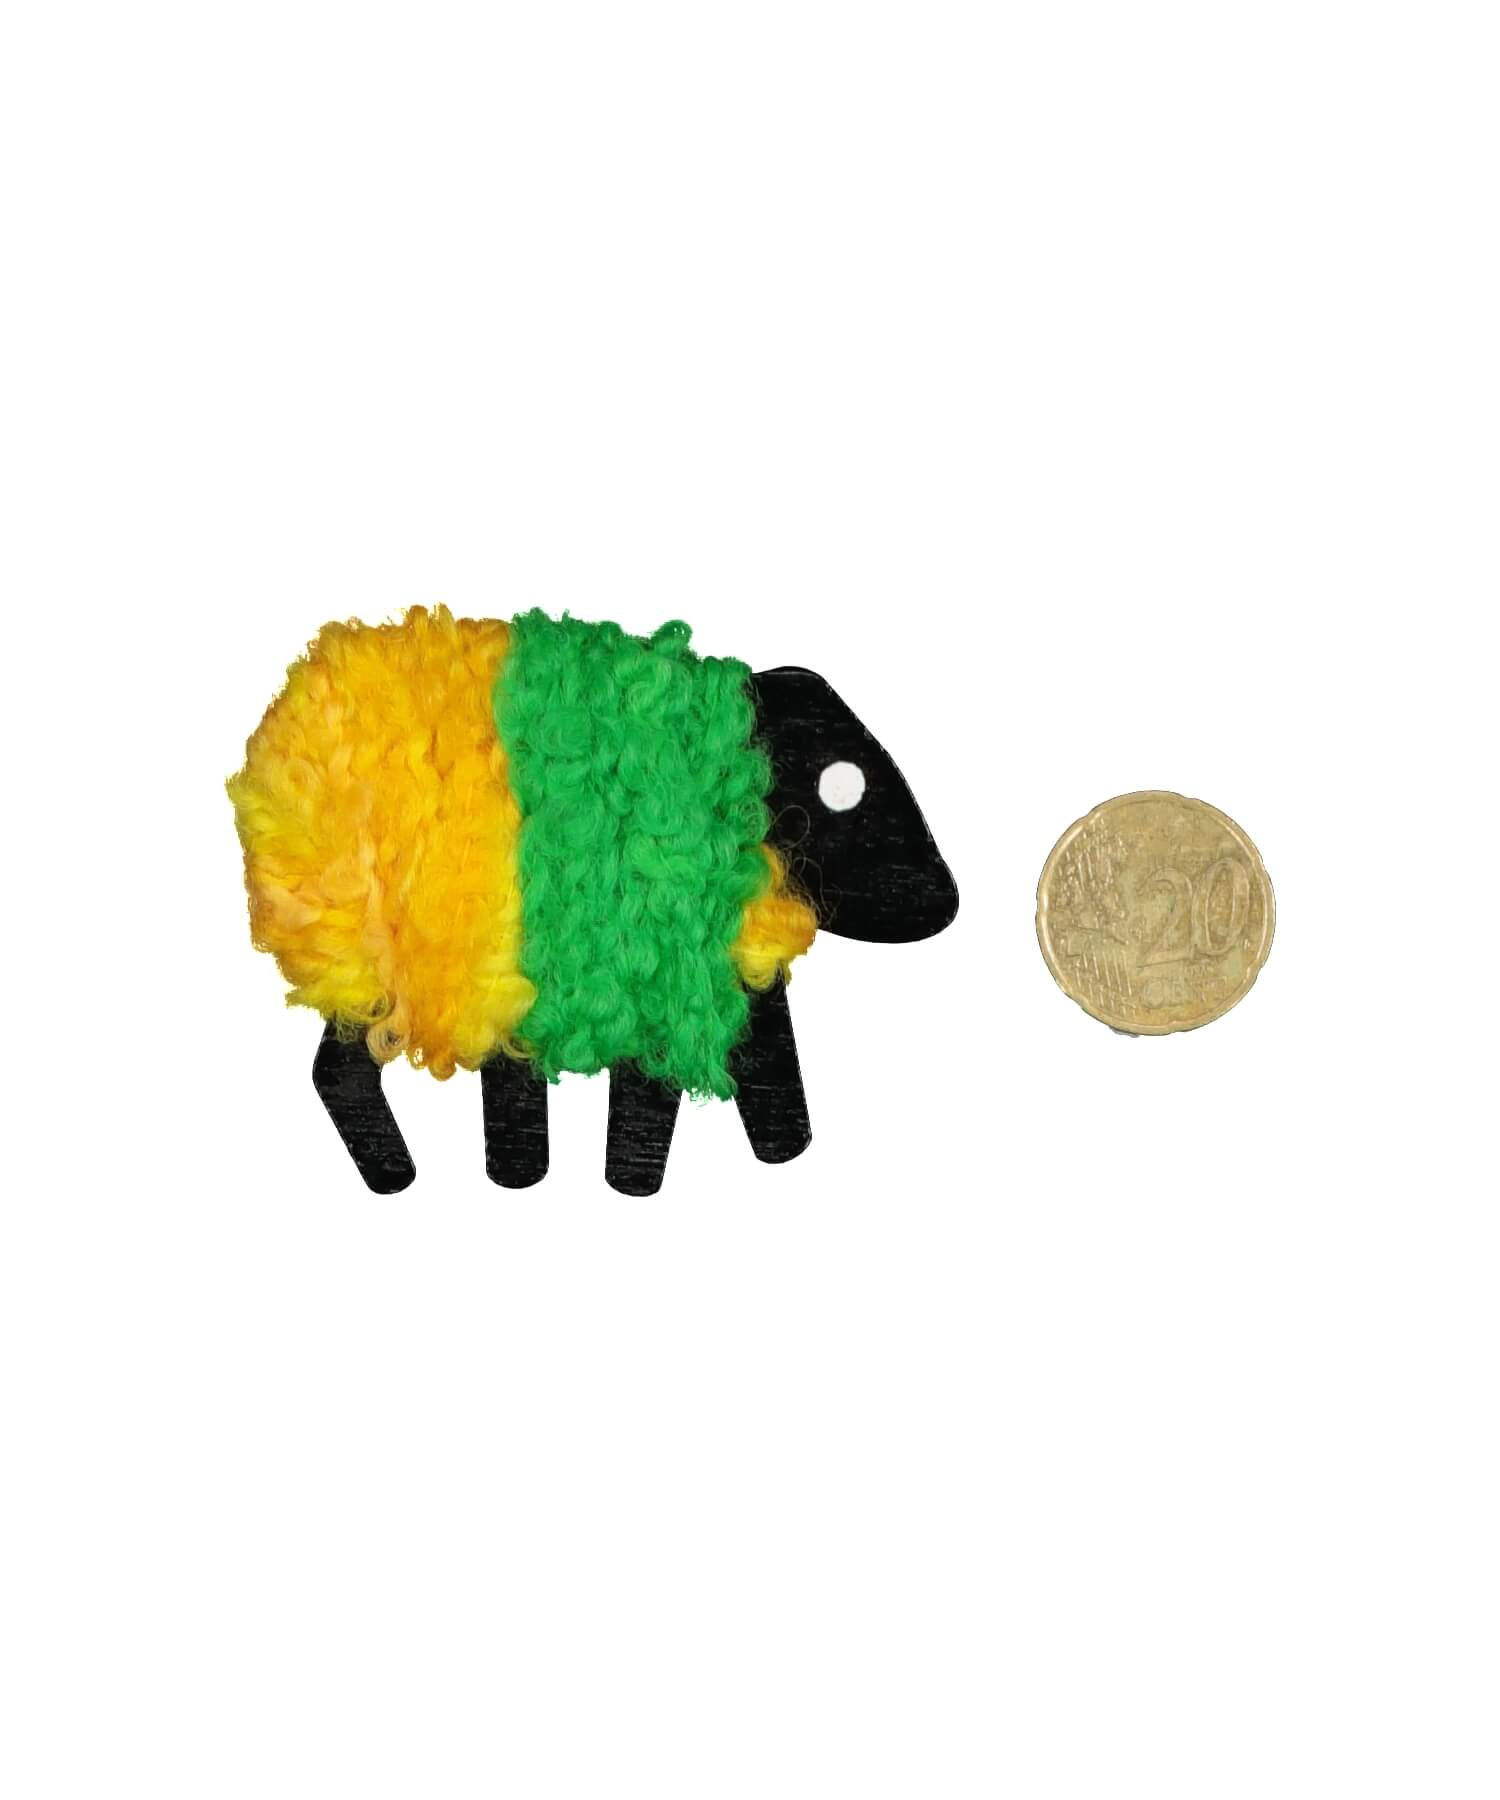 Handcrafted Sheep - Magnet - [Liz Christy] - Souvenir - Irish Gifts